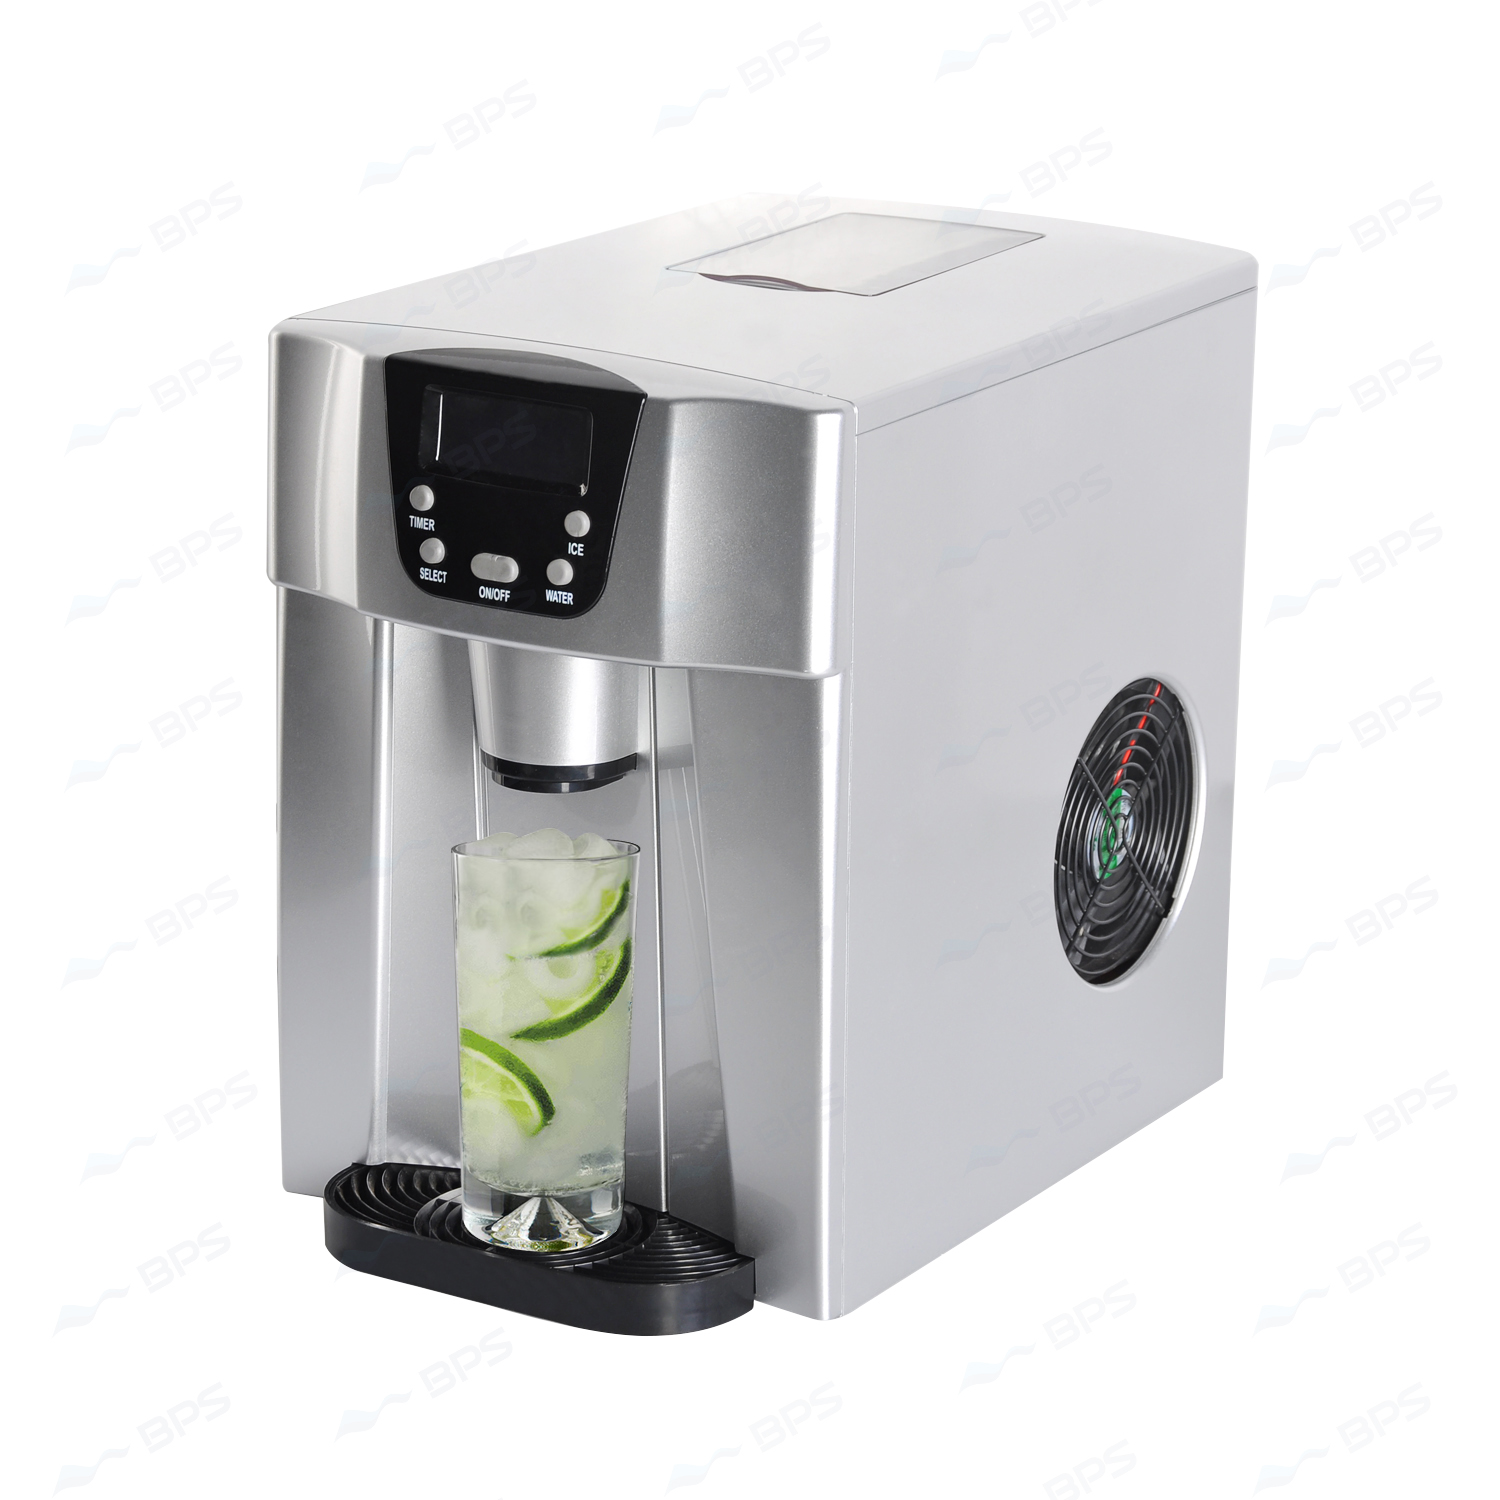 Portable Automatic Ice Cube Dispenser Digital Ice Maker